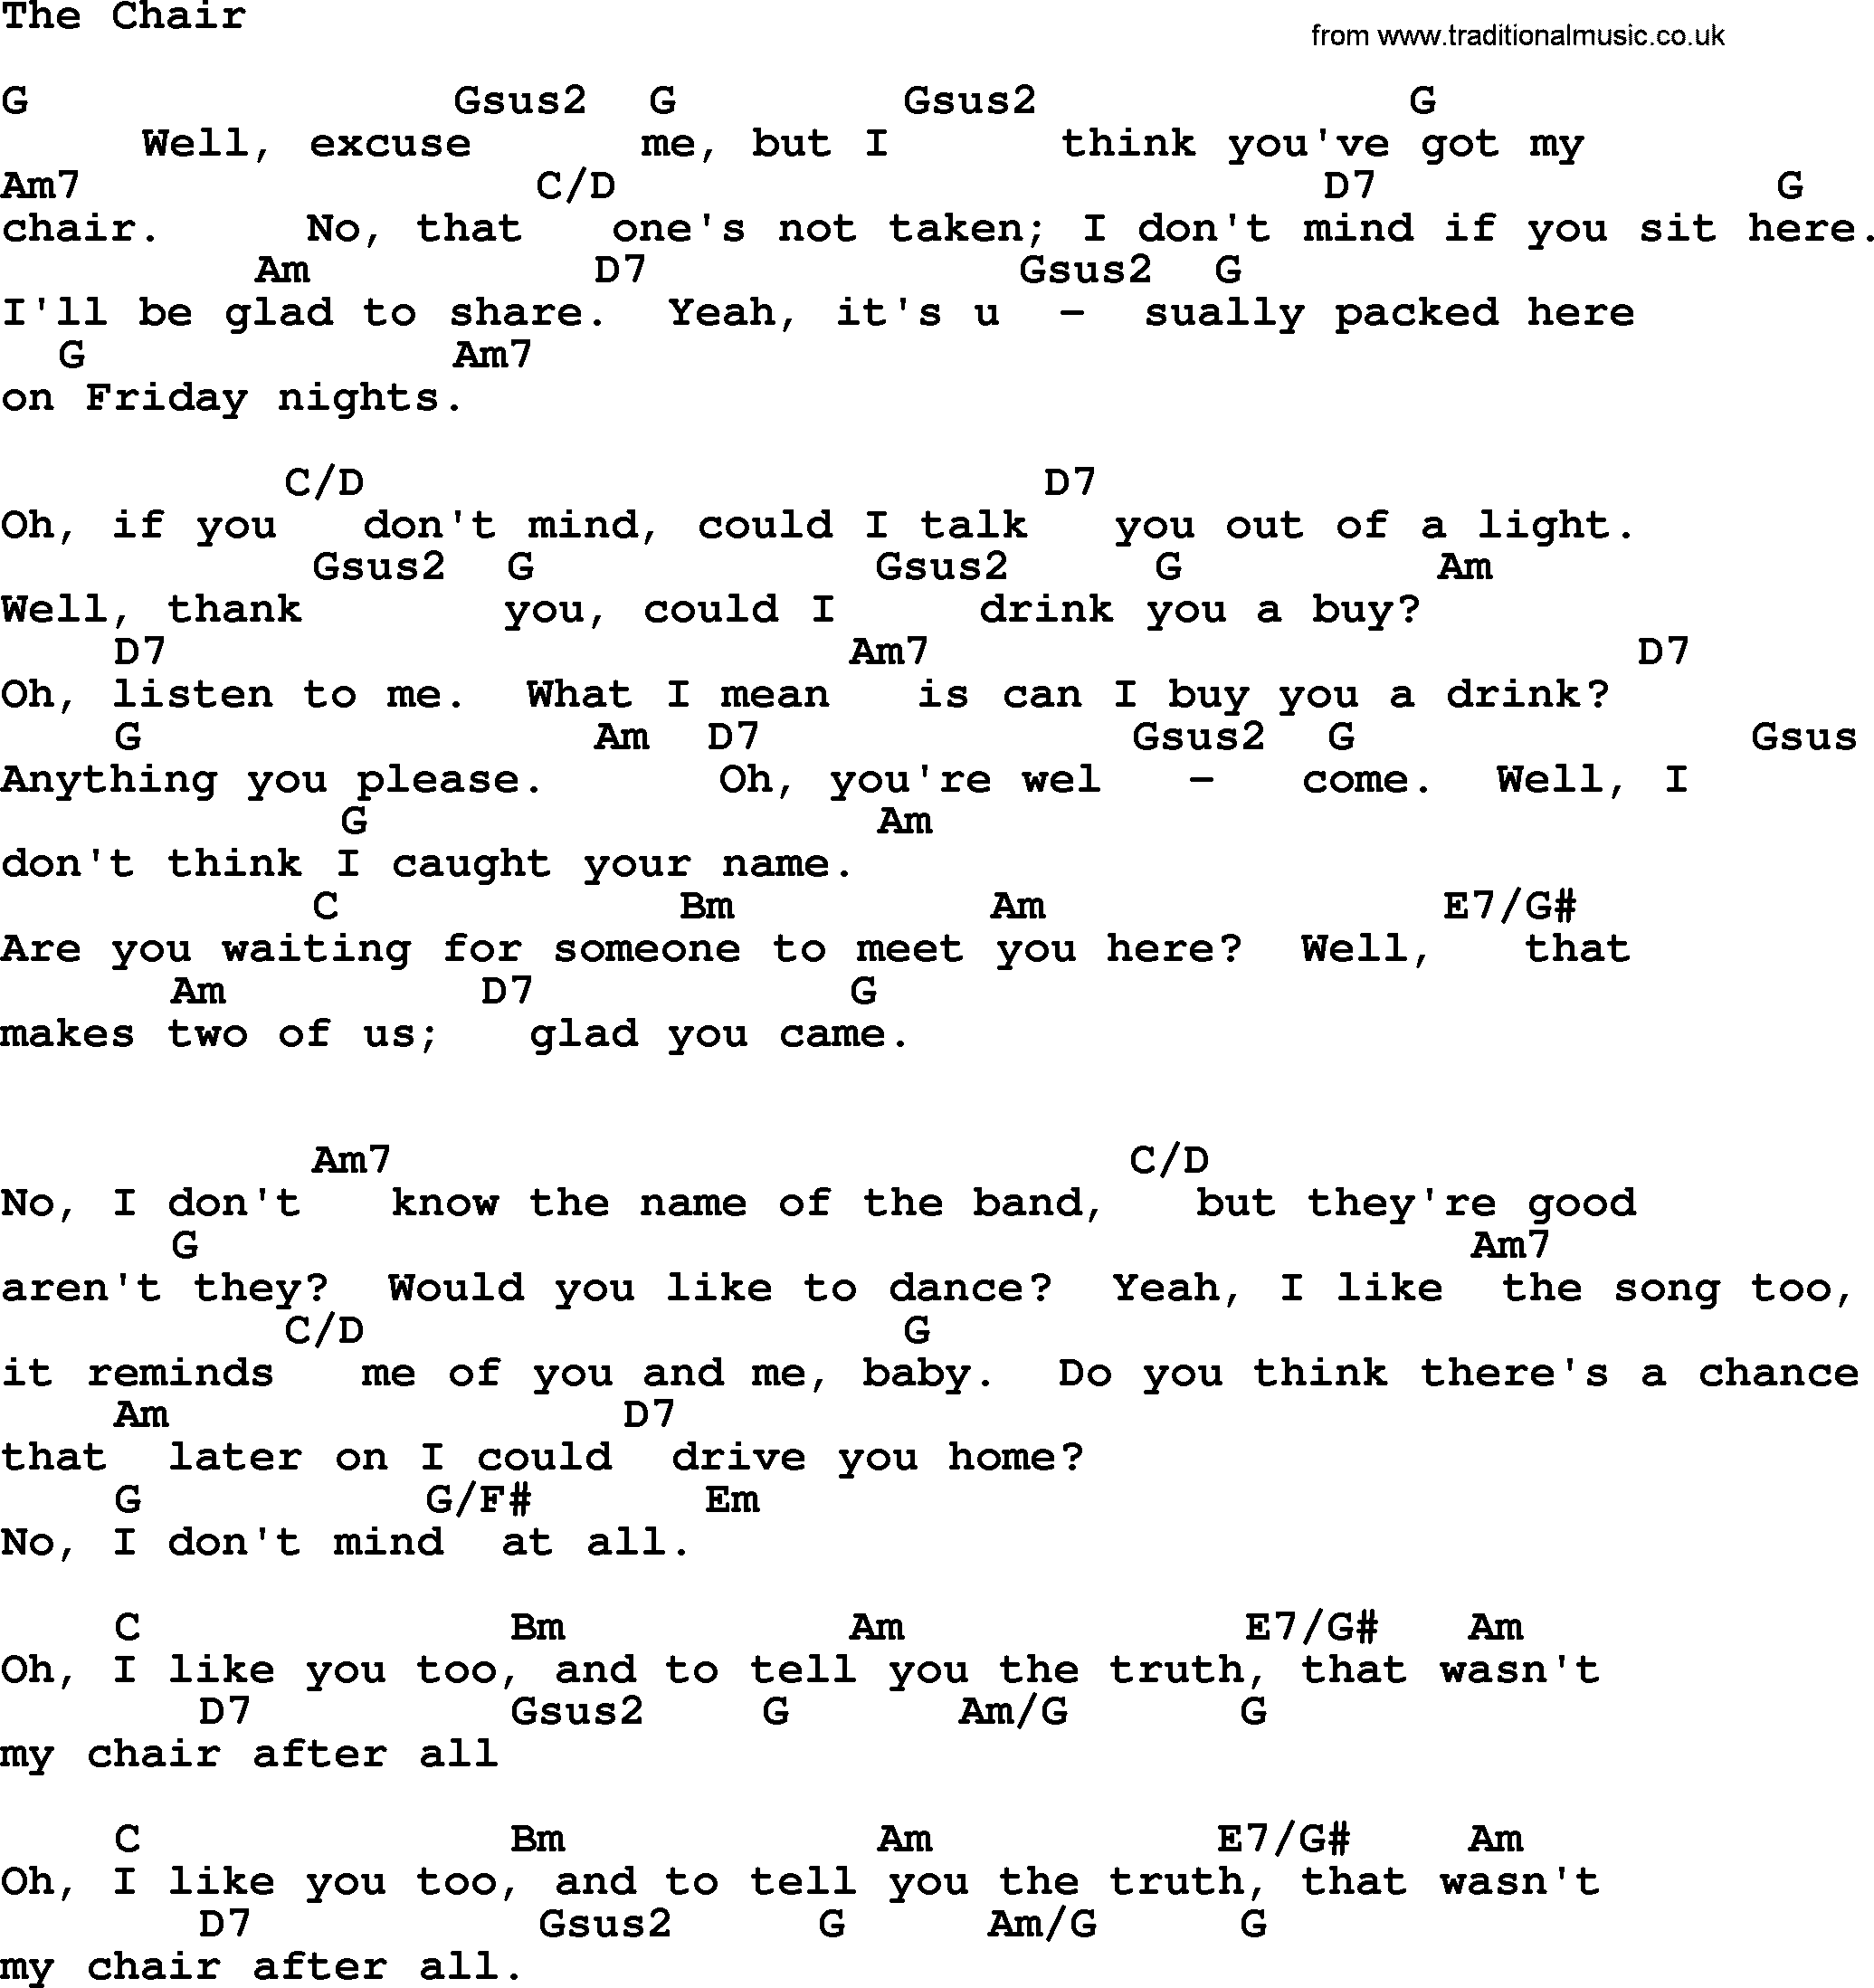 The Chair By George Strait Lyrics And Chords